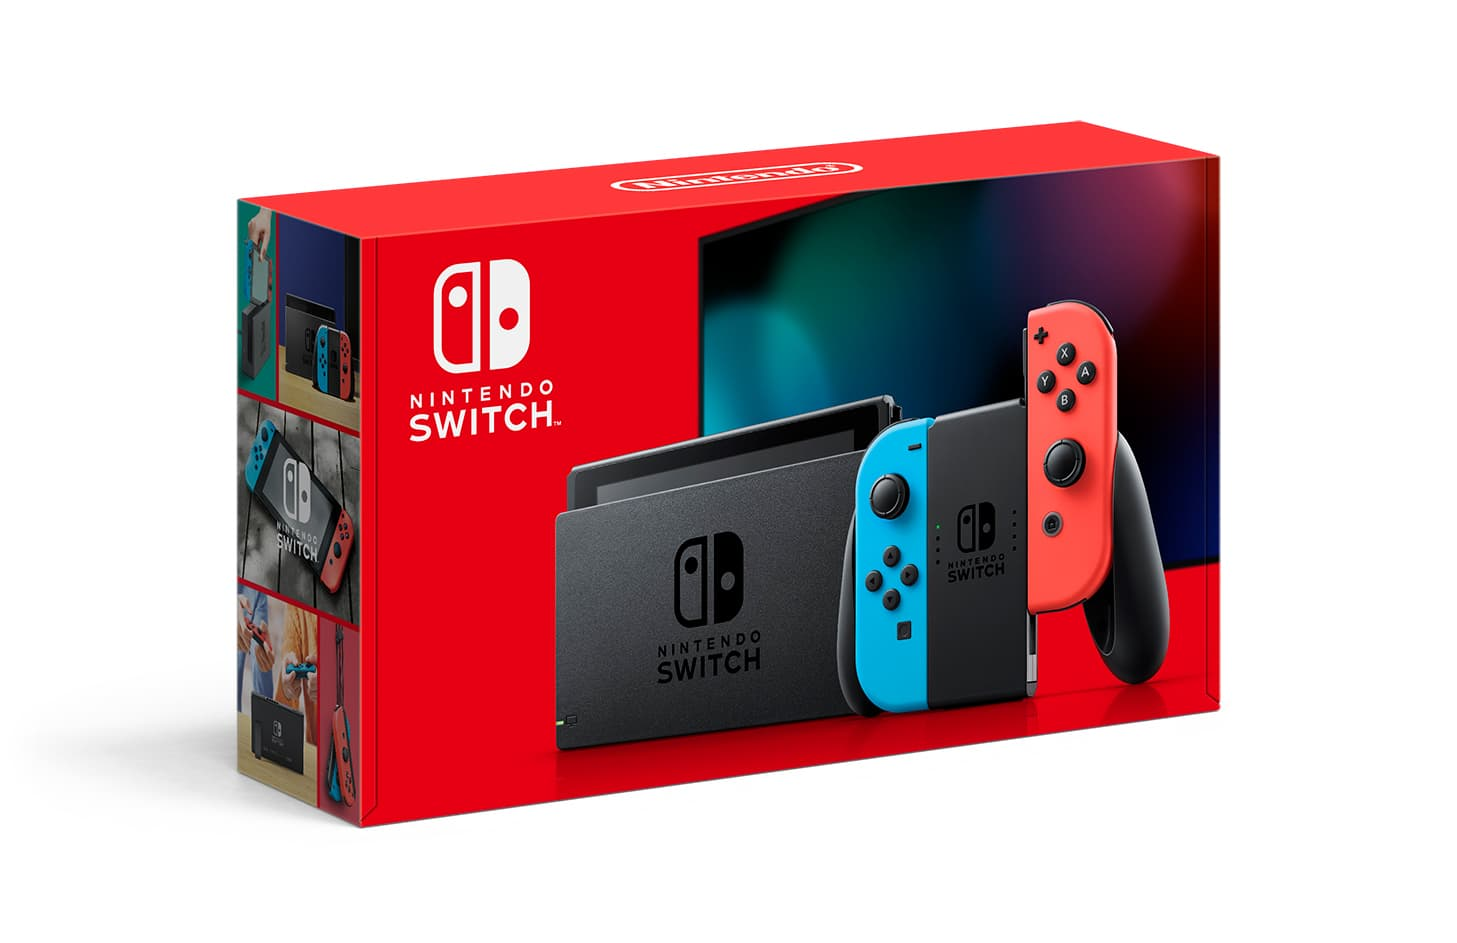 Nintendo Switch Console with Neon Blue & Red Joy-Con at Walmart YMMV $299